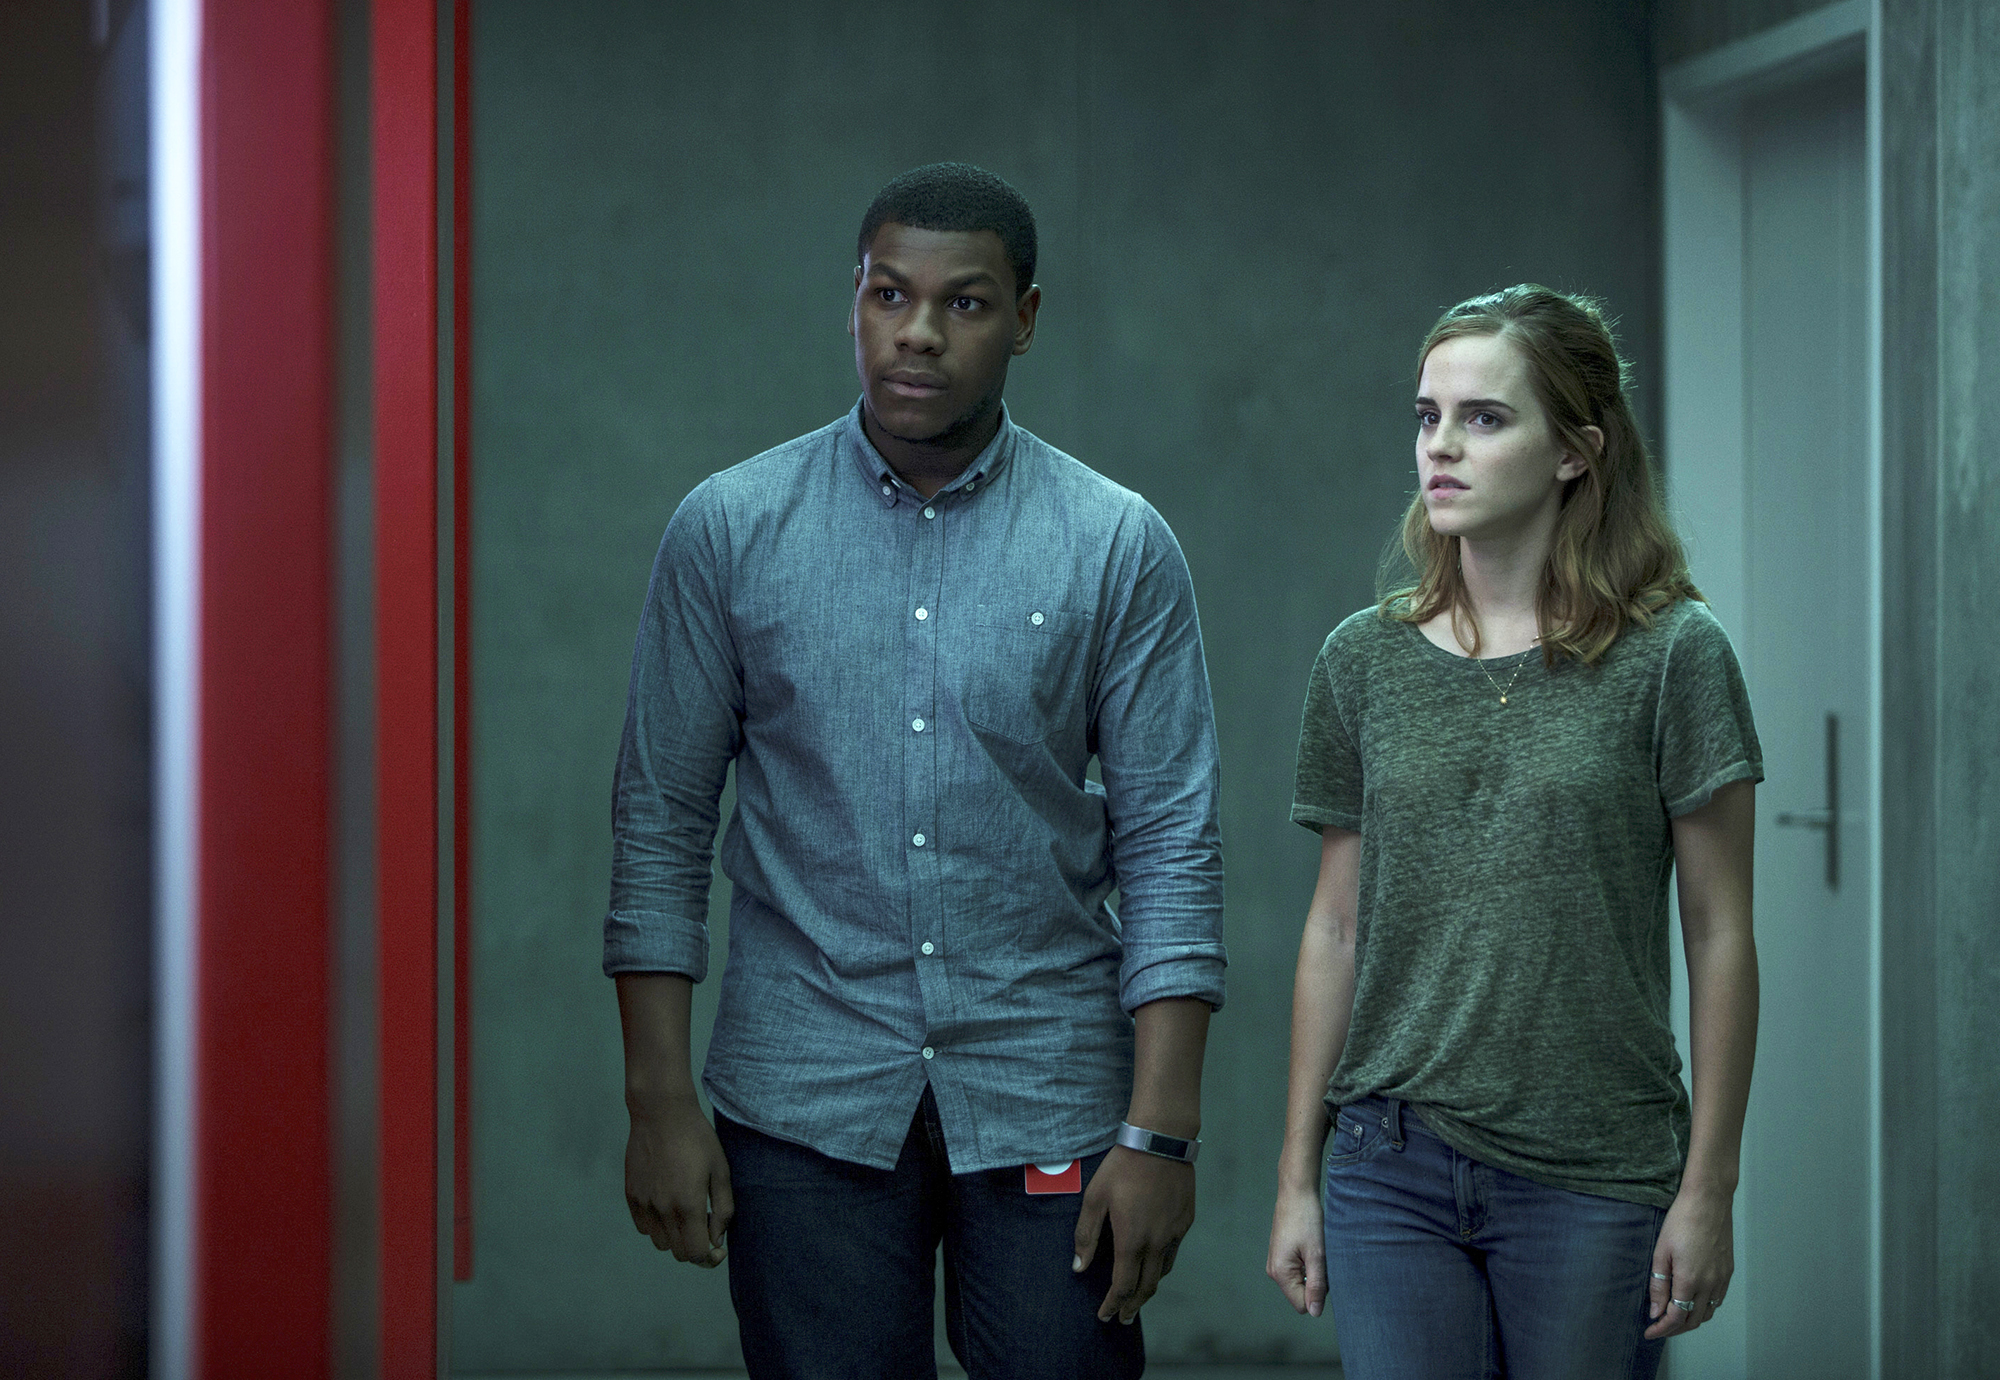 John Boyega, left, and Emma Watson in a scene from The Circle.